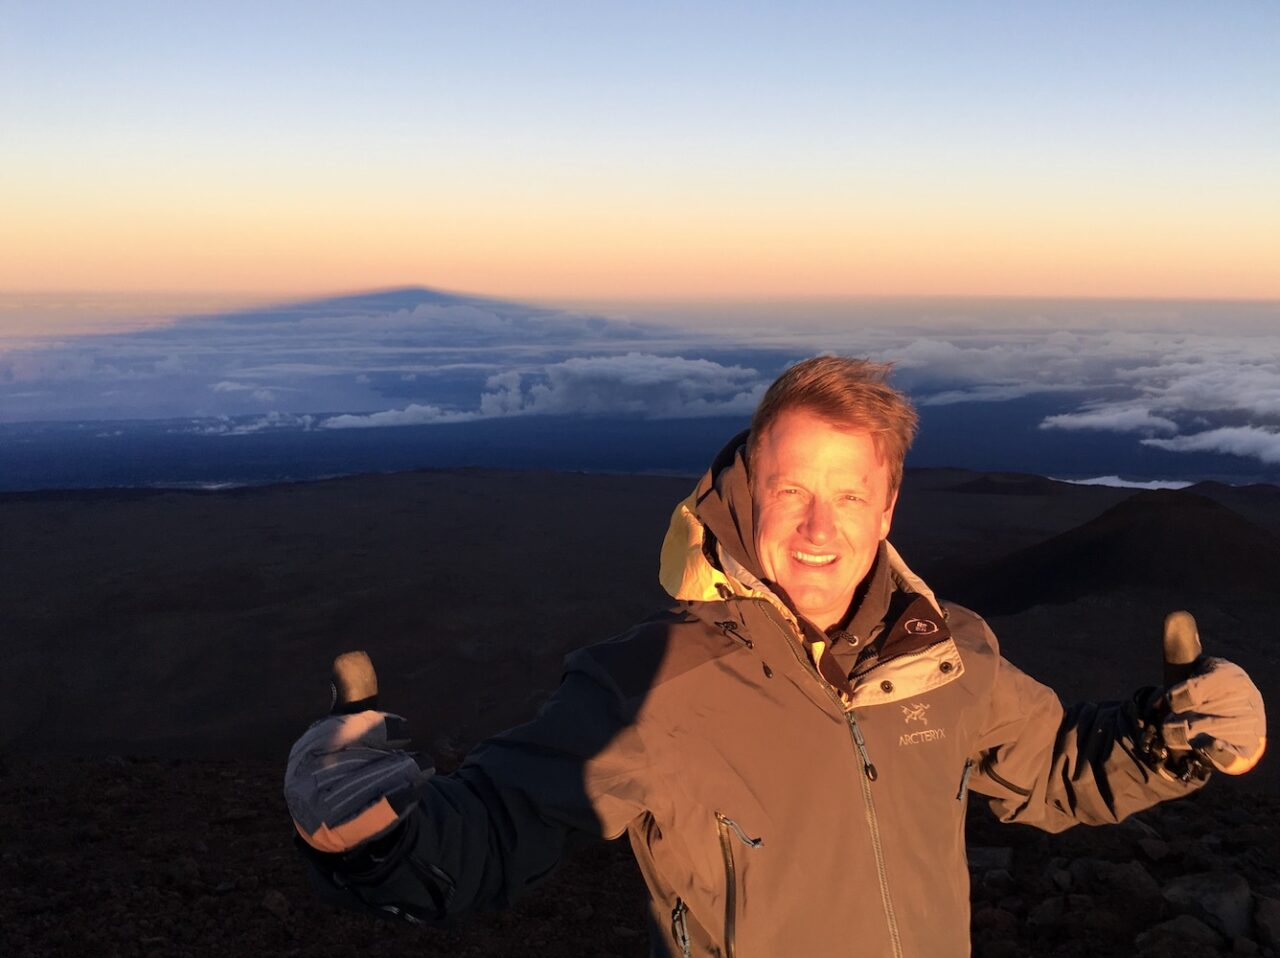 C – Mauna Kea casts the longest mountain shadow I have ever seen – world largest volcano